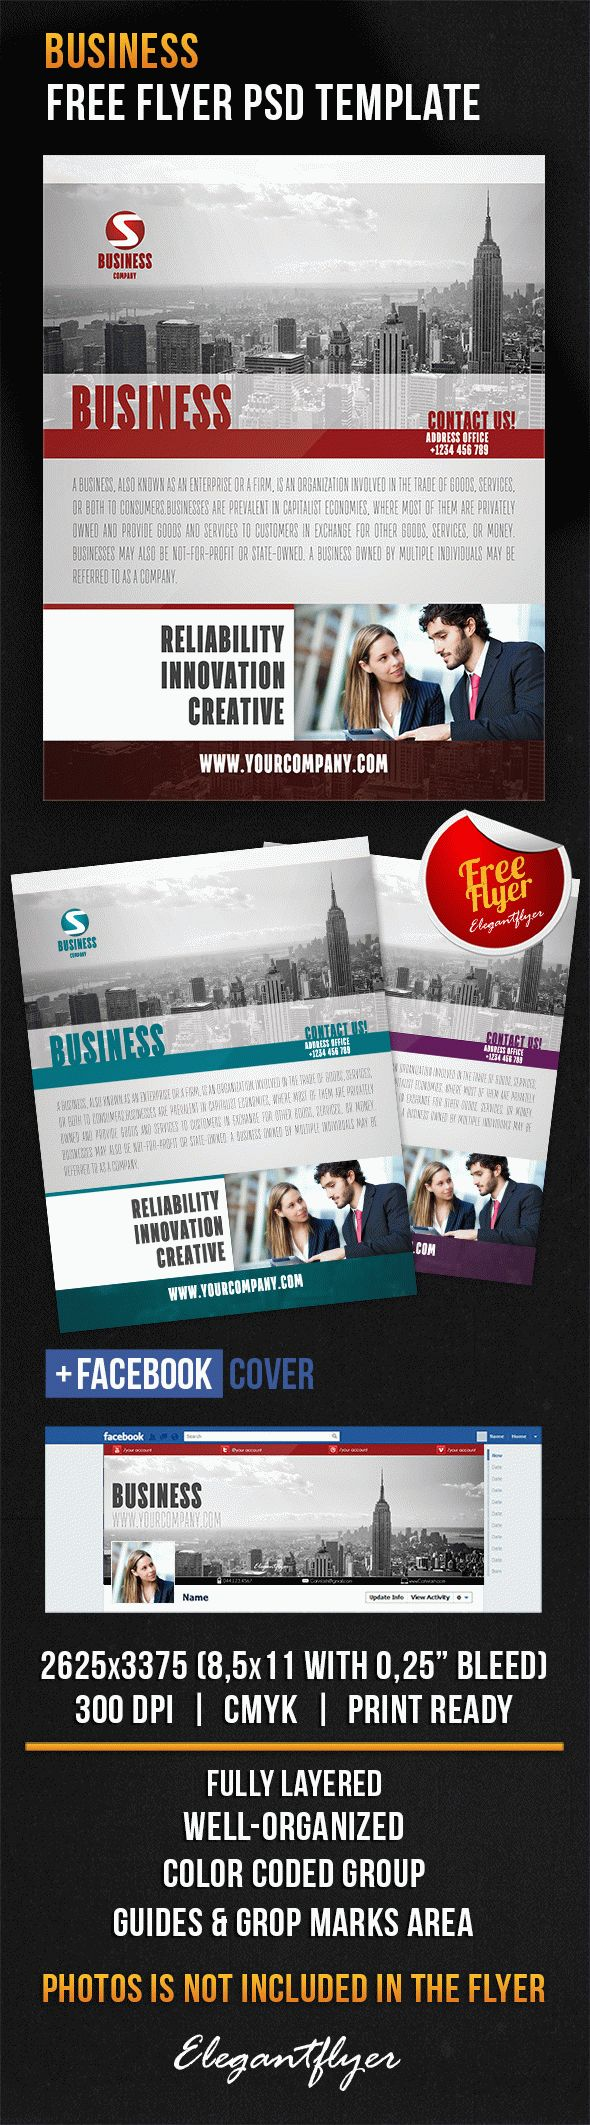 Free Flyer Template To Business